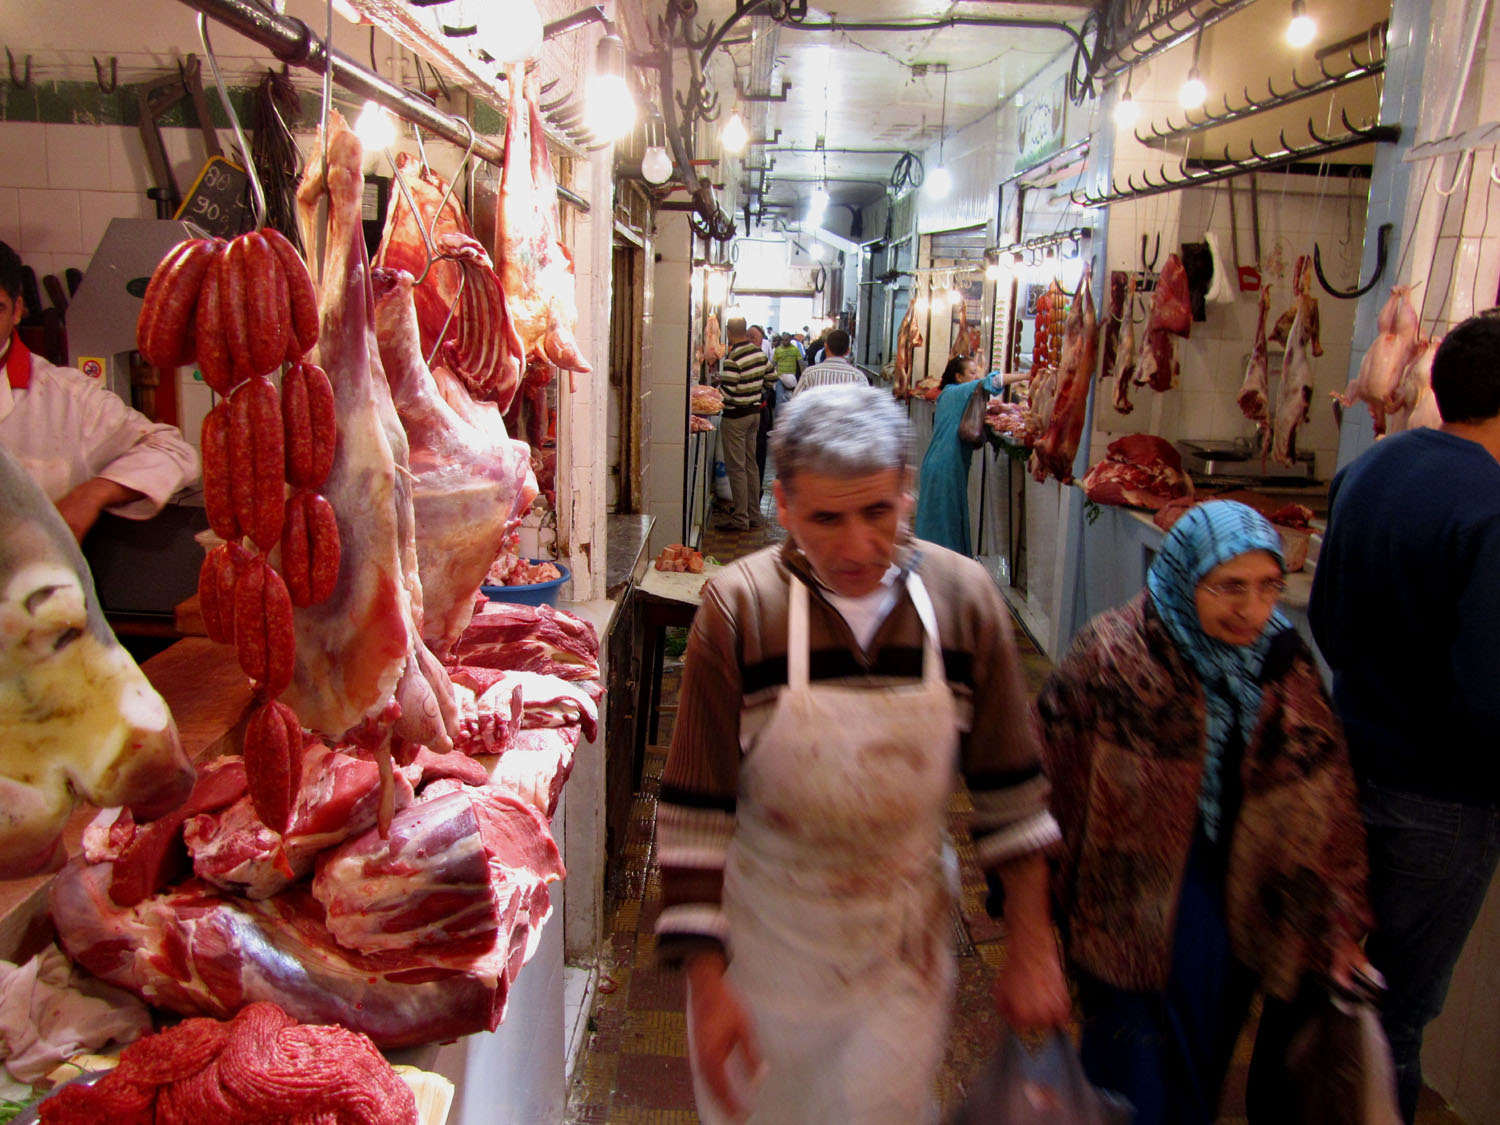 Morocco-Tangier-Souk-Meat